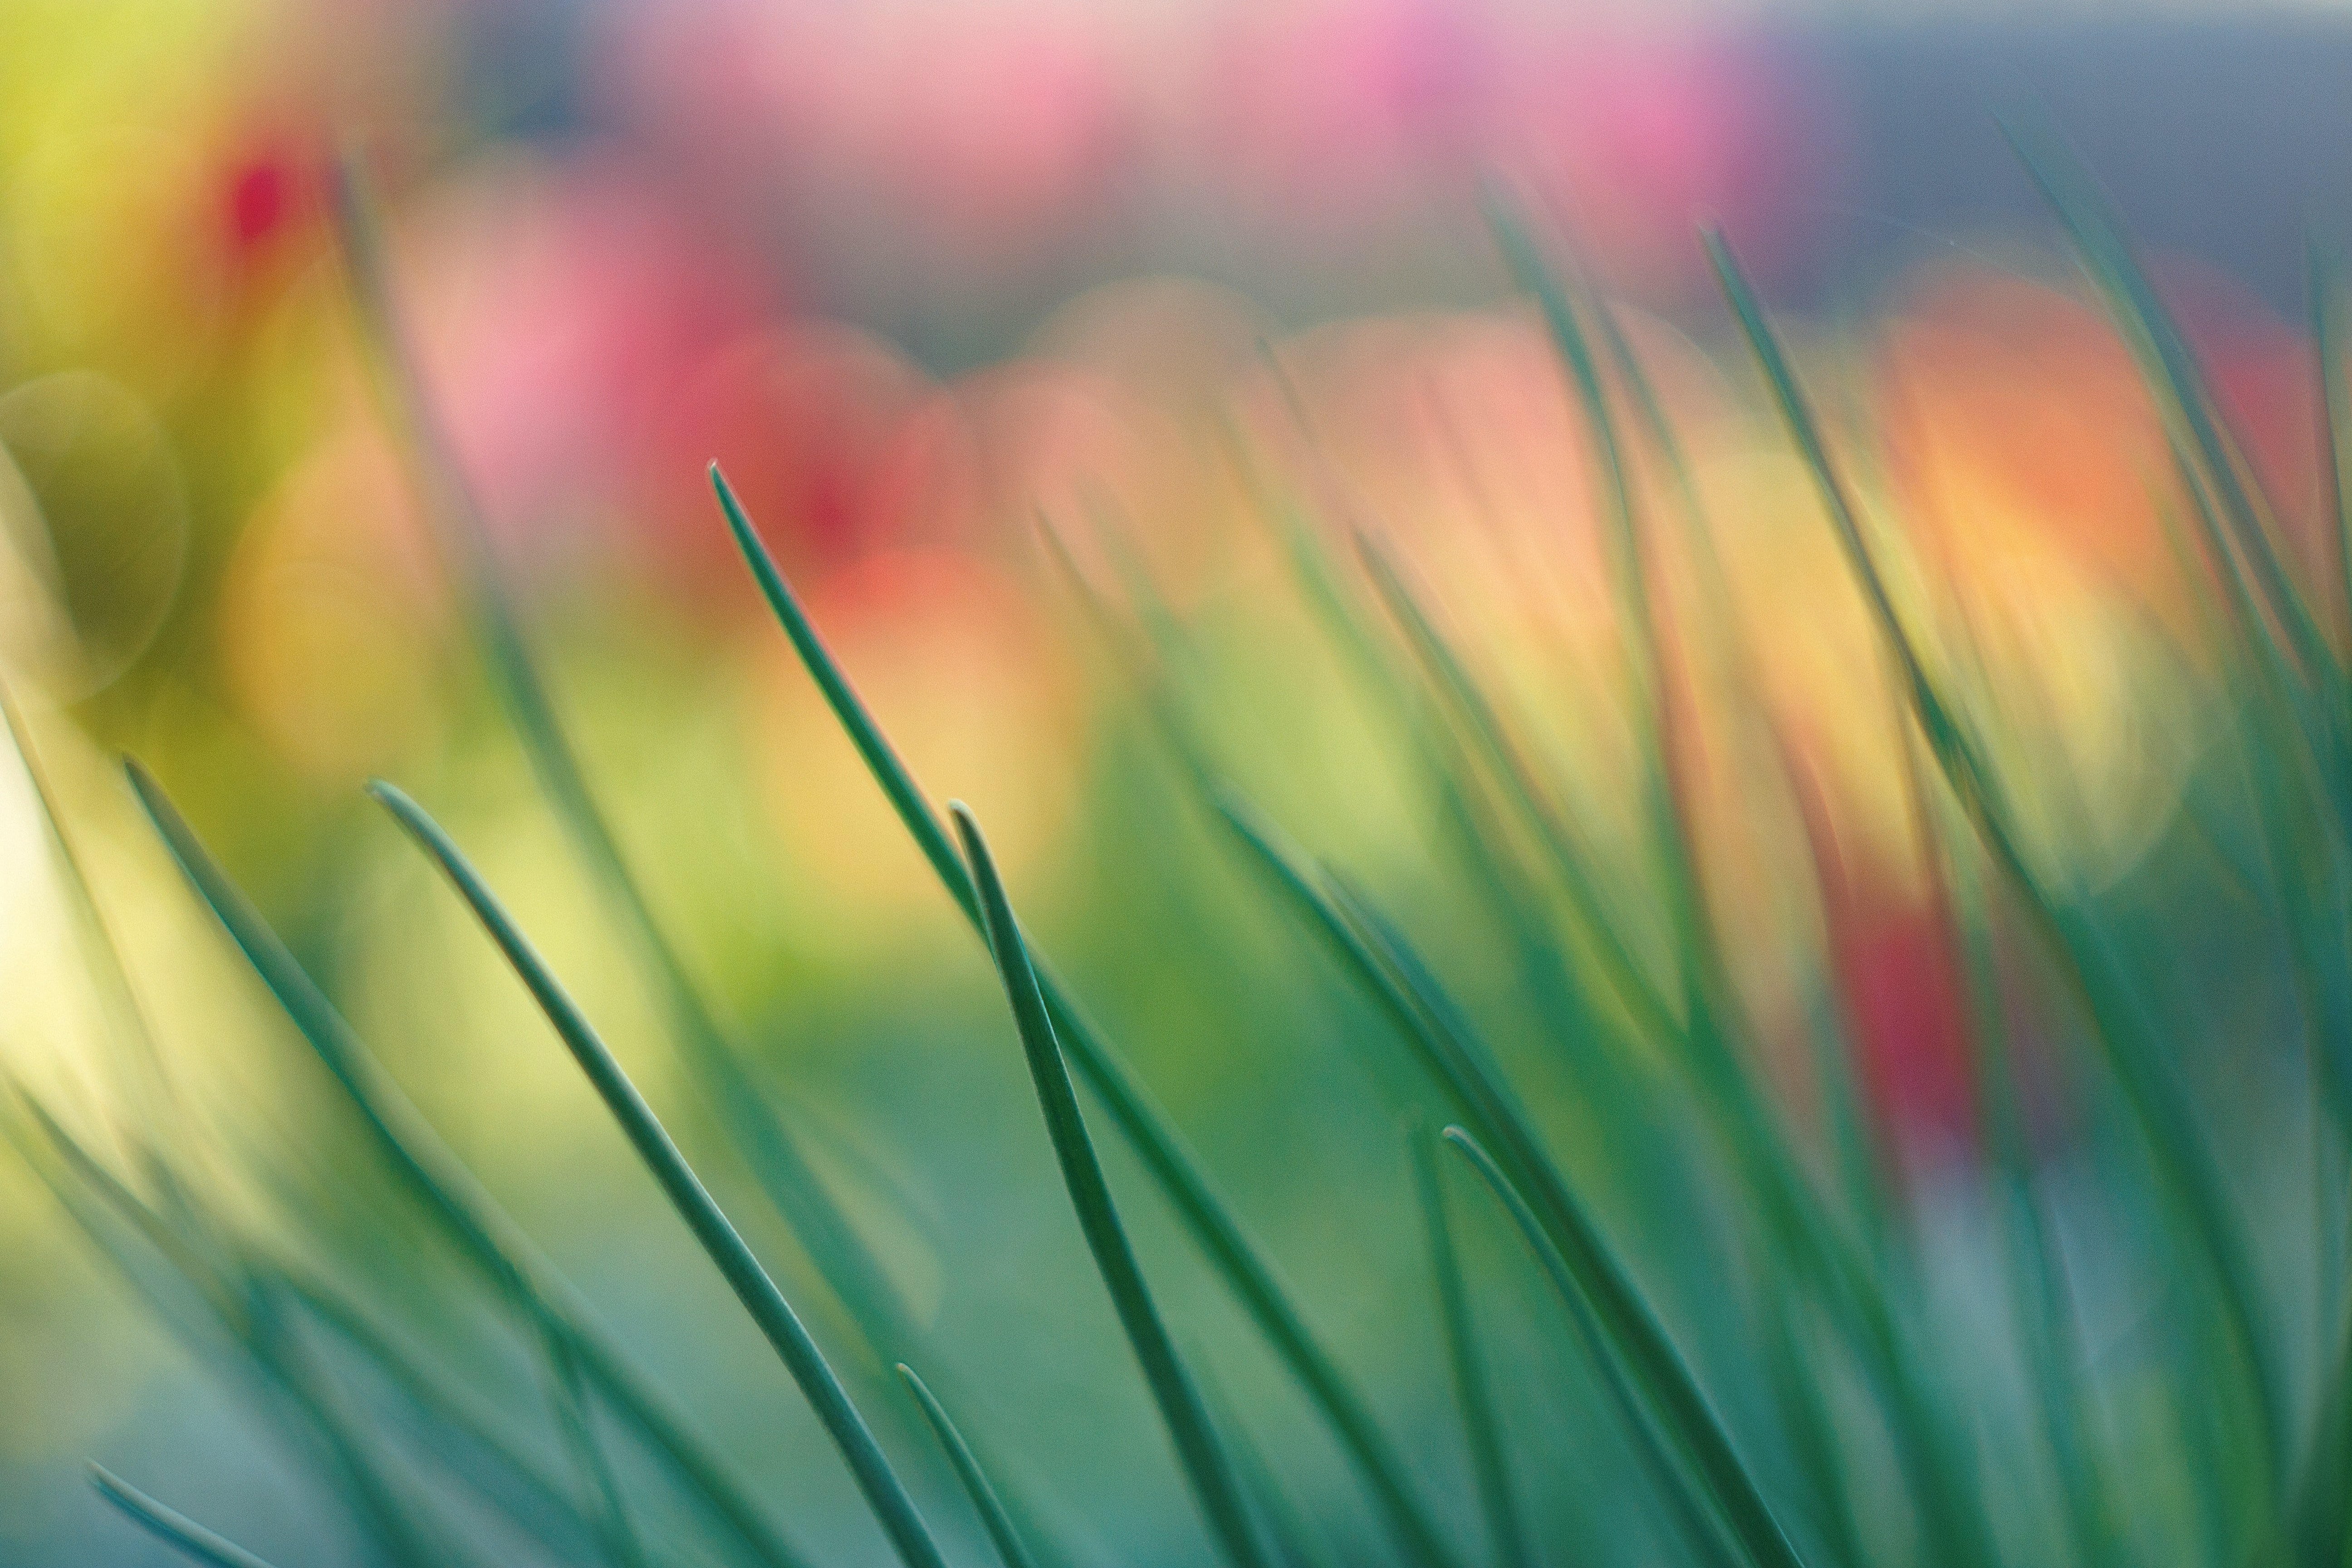 shallow focus photography of green grass